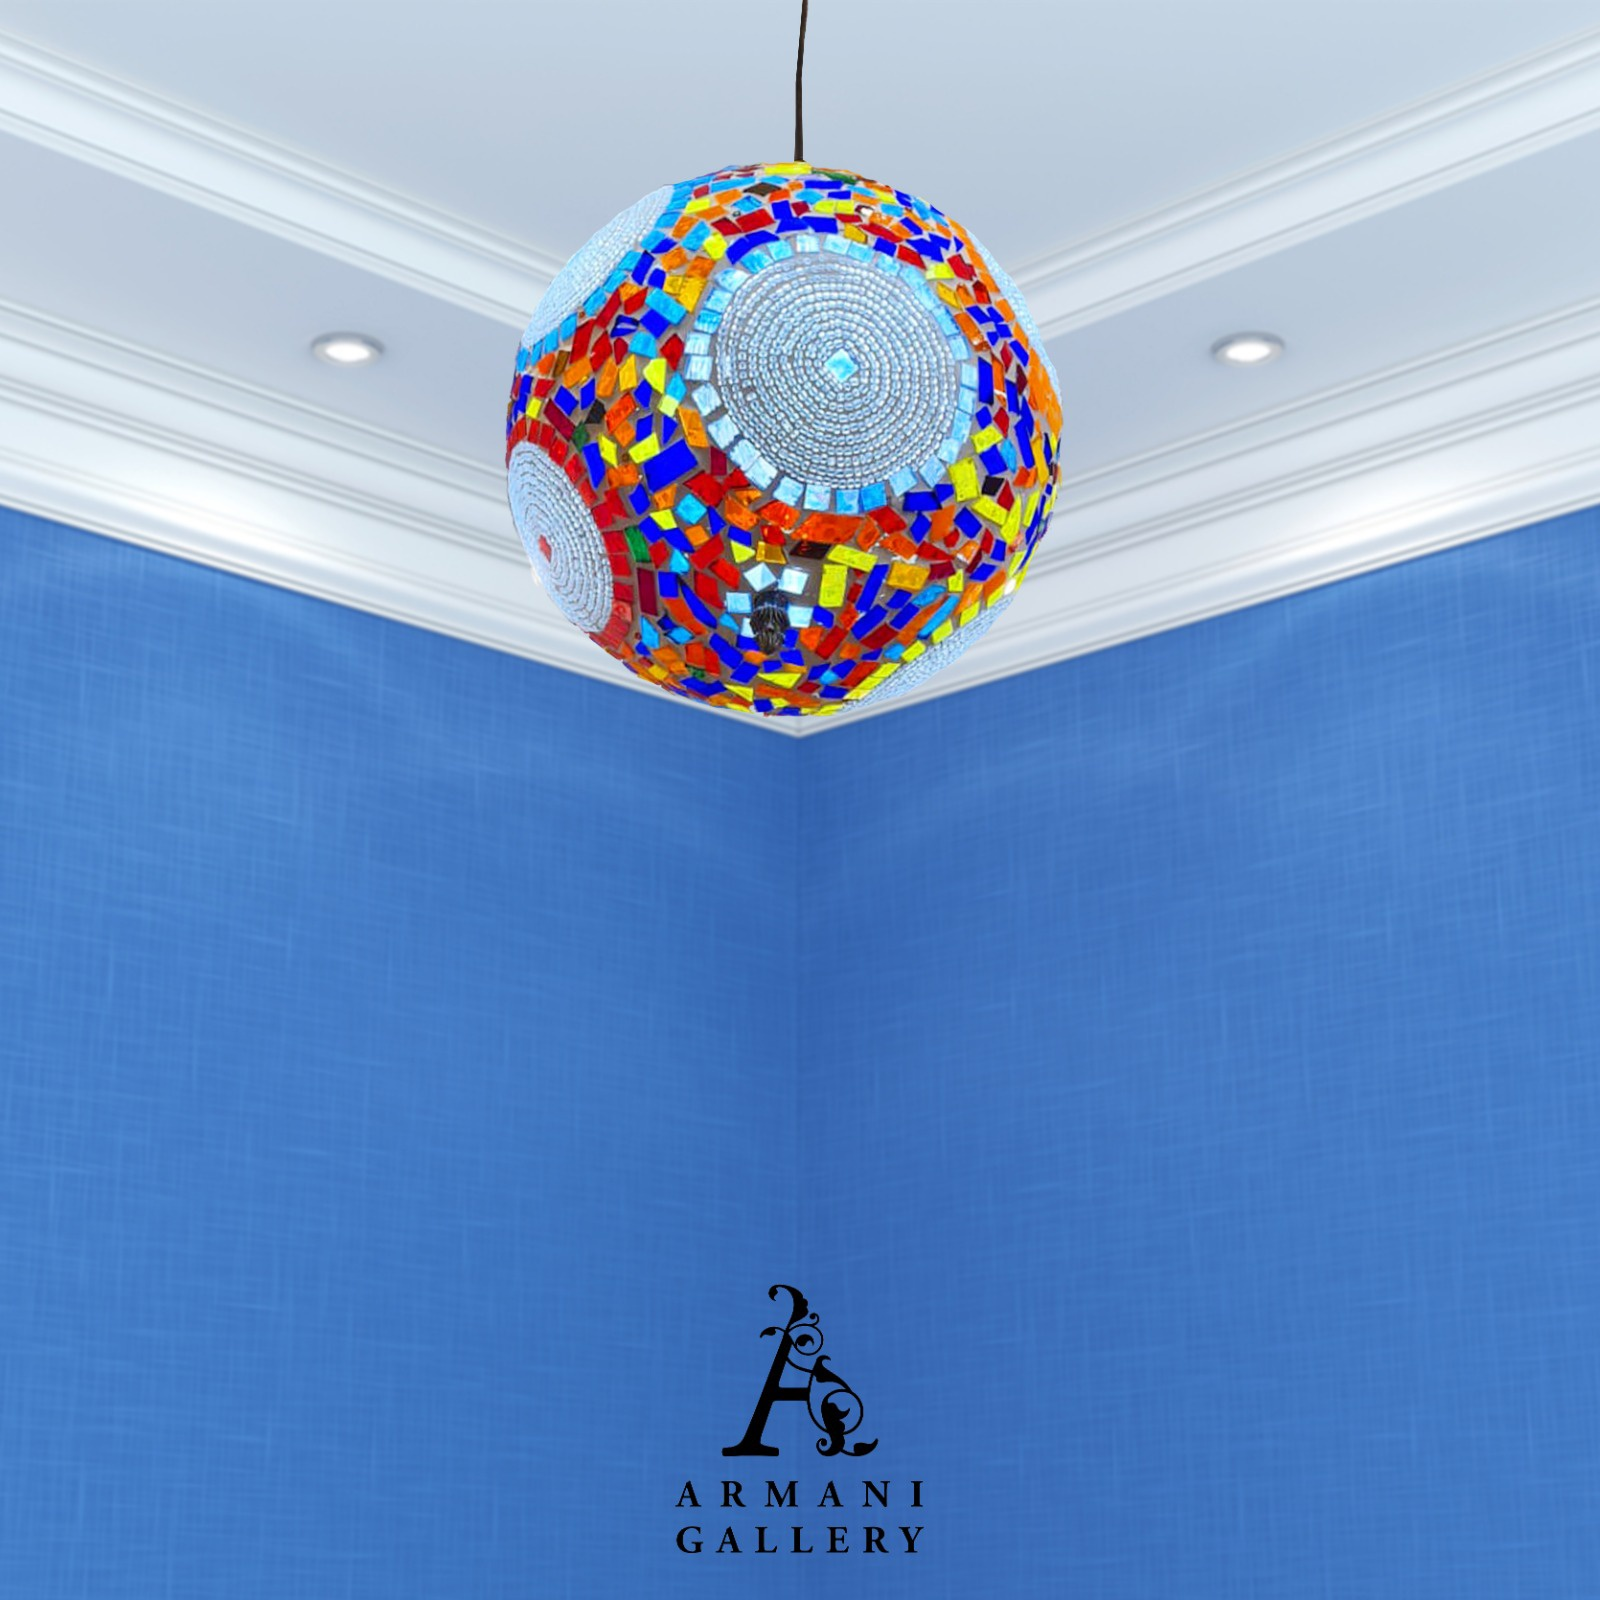 Buy Turkish Ceiling Chandelier SR-1108